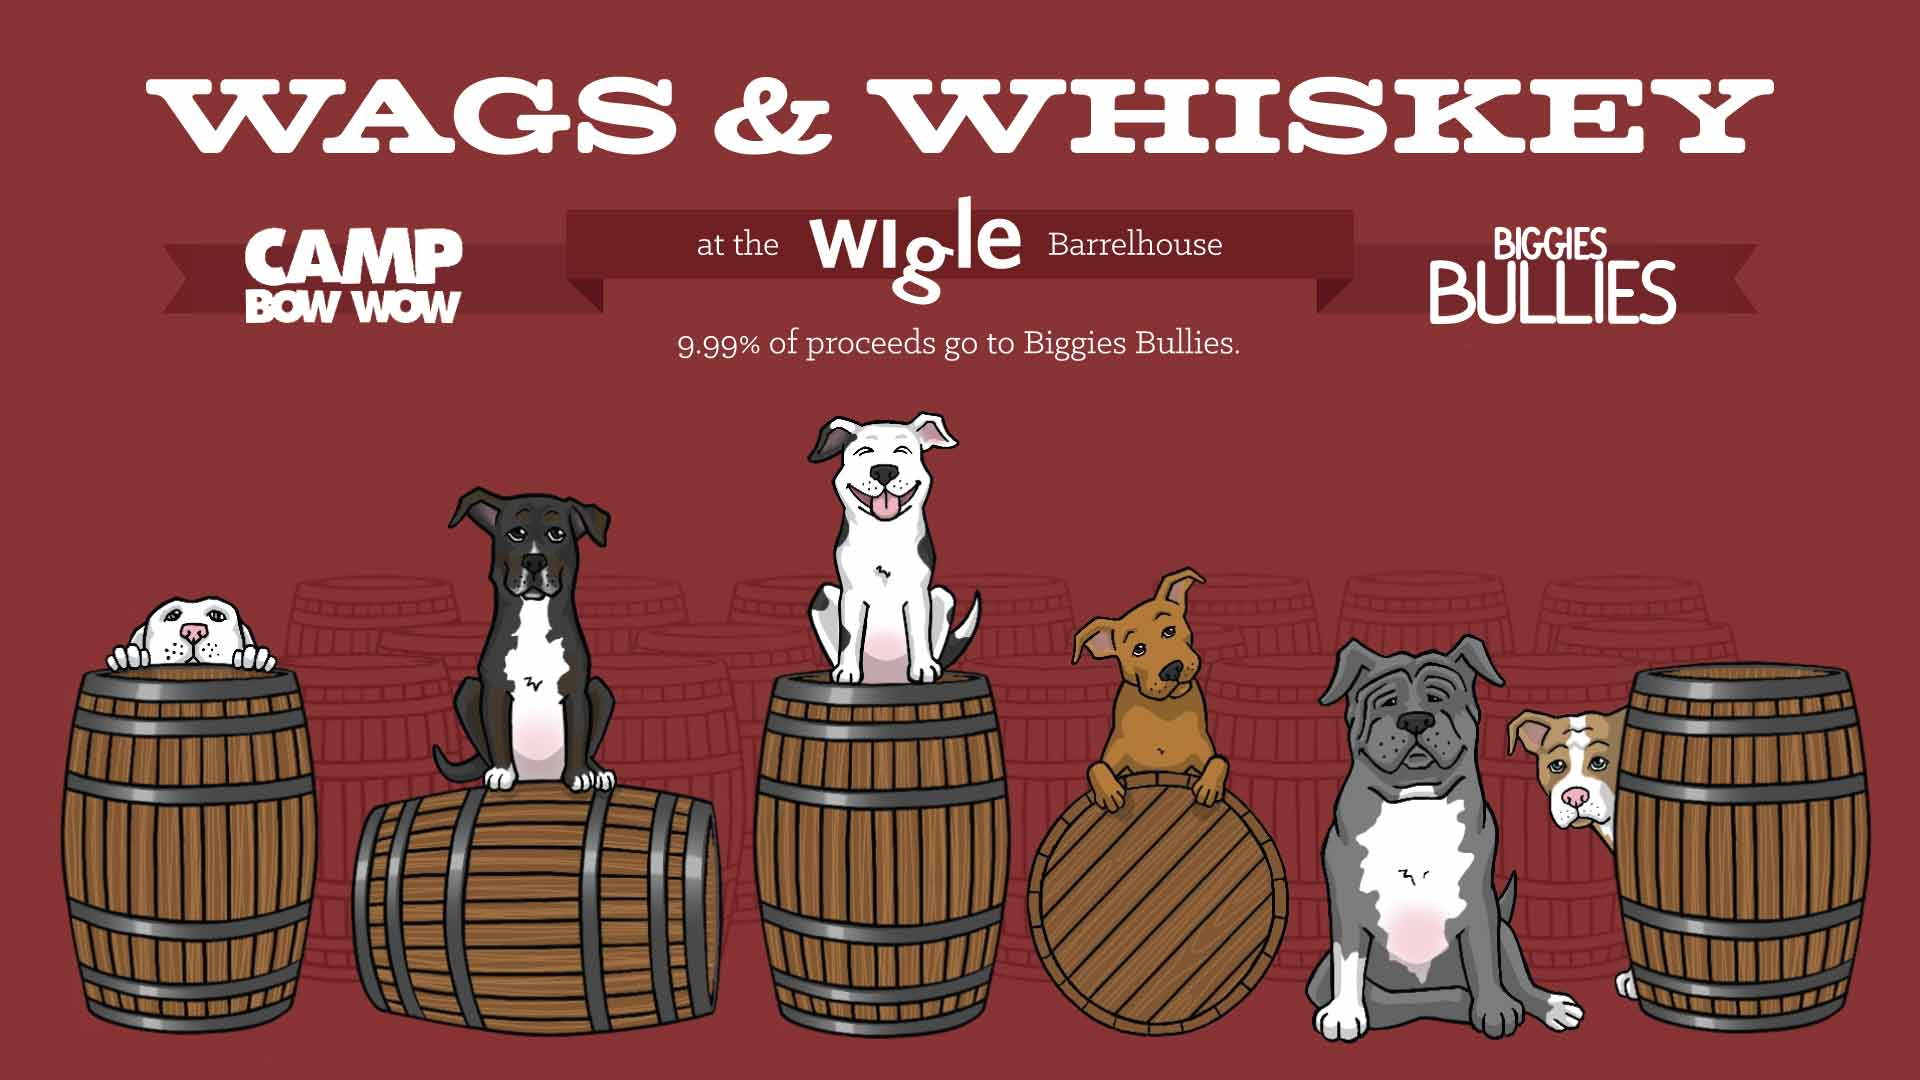 Sunday, October 20th - Wags & Whiskey - Wigle Barrelhouse & Whiskey Garden